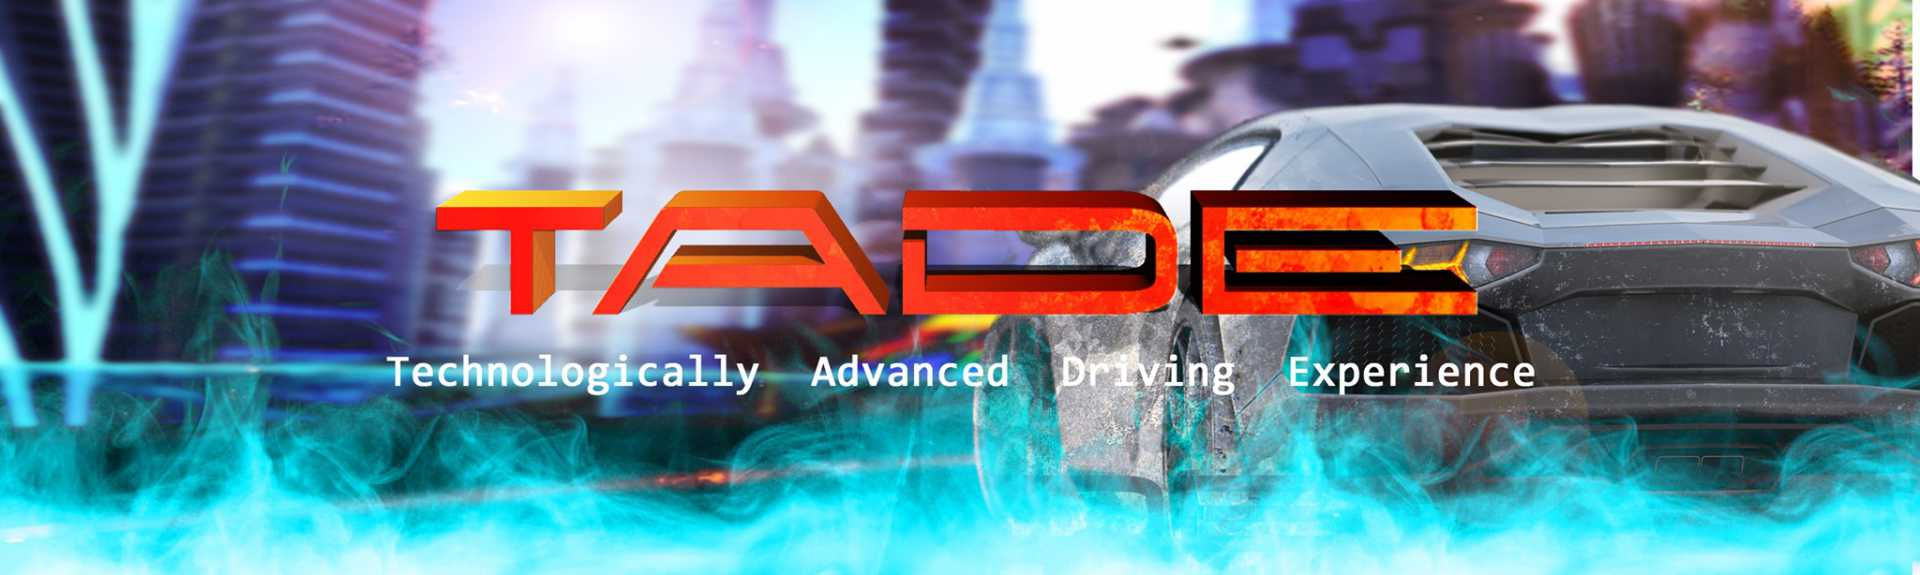 TADE - Technically Advanced Driving Experience